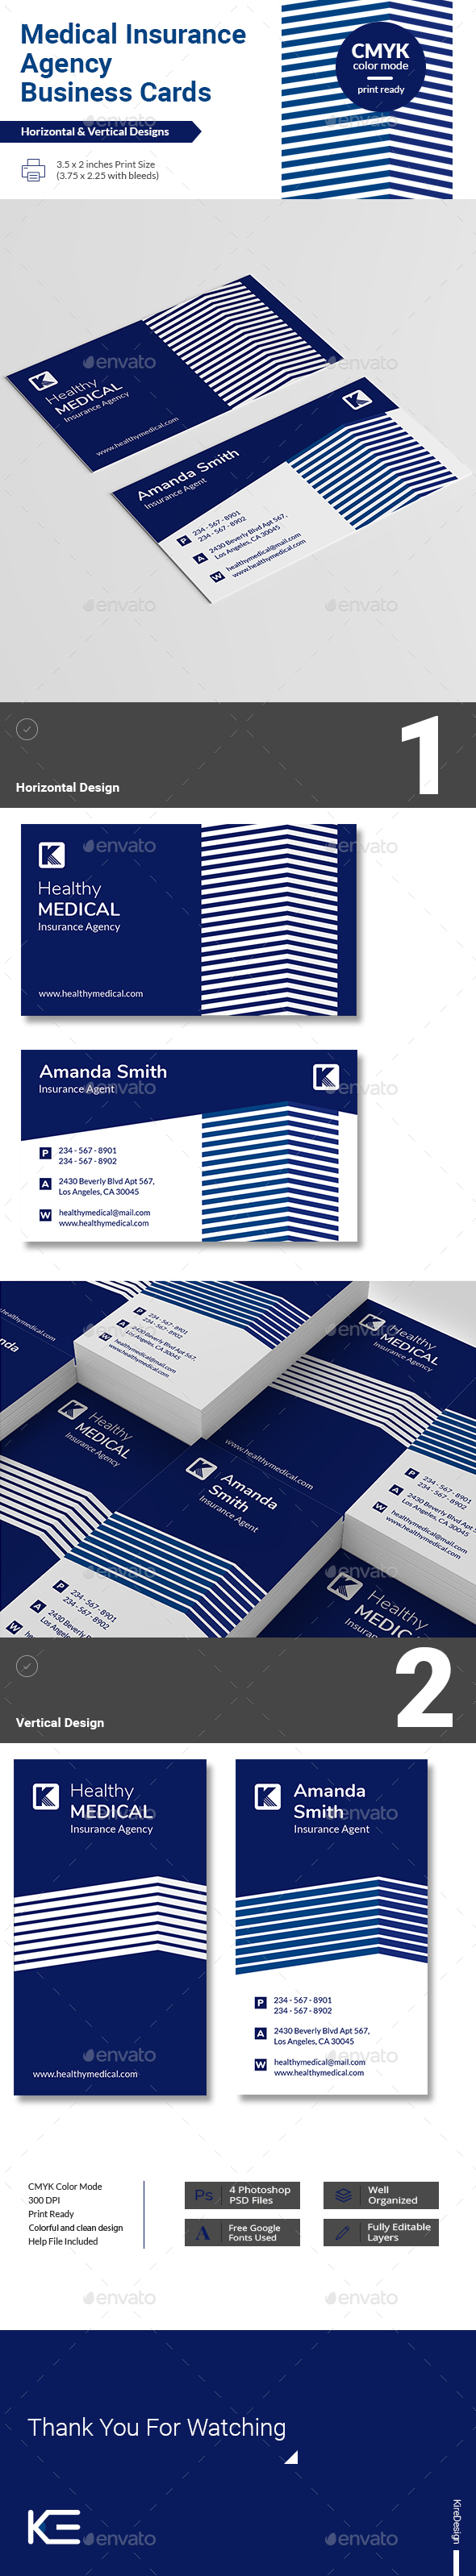 Medical Insurance Agency Business Cards - Business Cards Print Templates